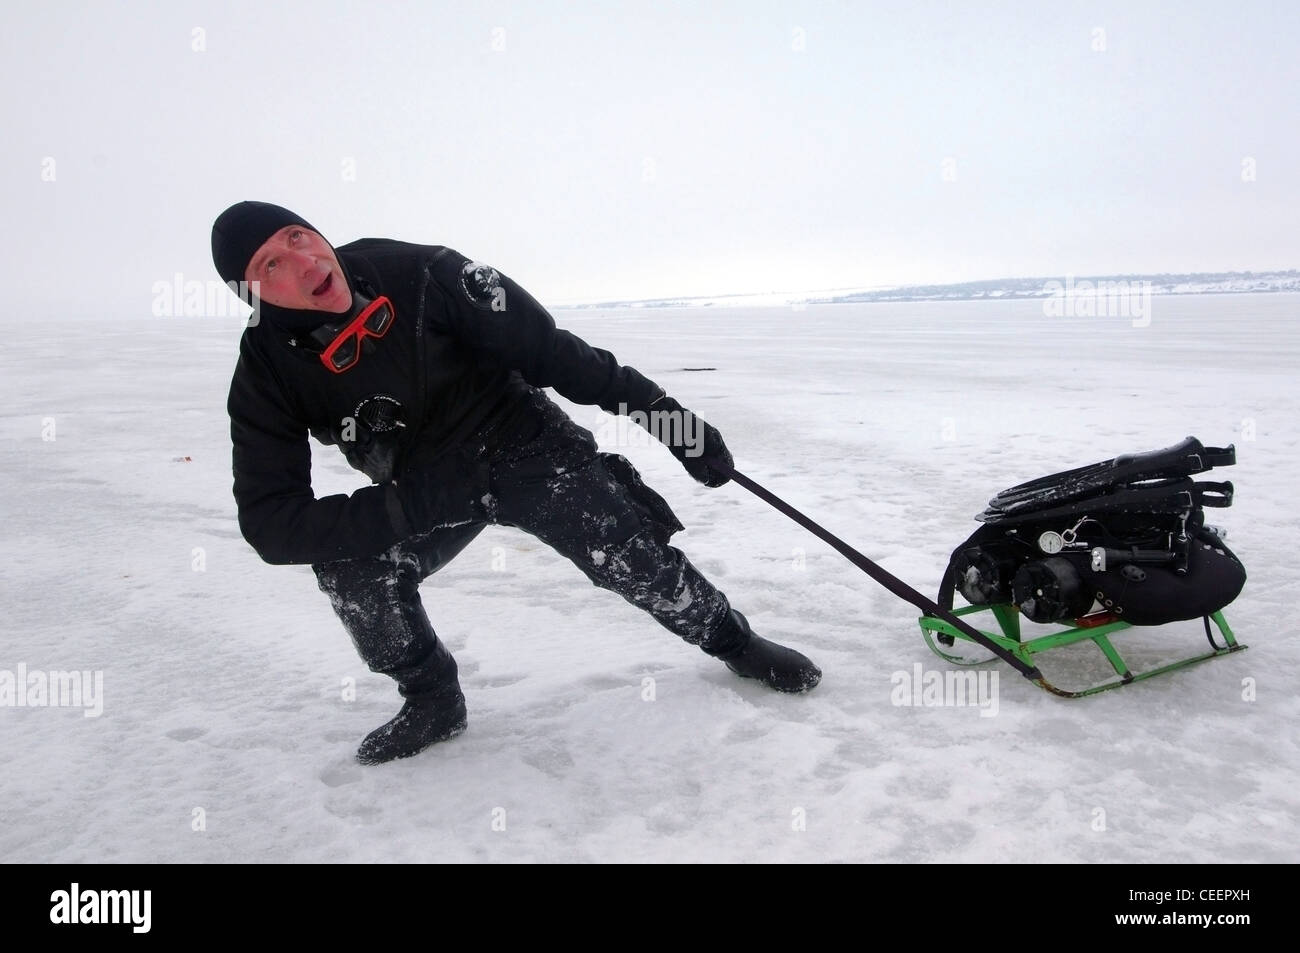 Subglacial diving in Black sea, Odessa, Ukraine, the Eastern Europe - Stock Image